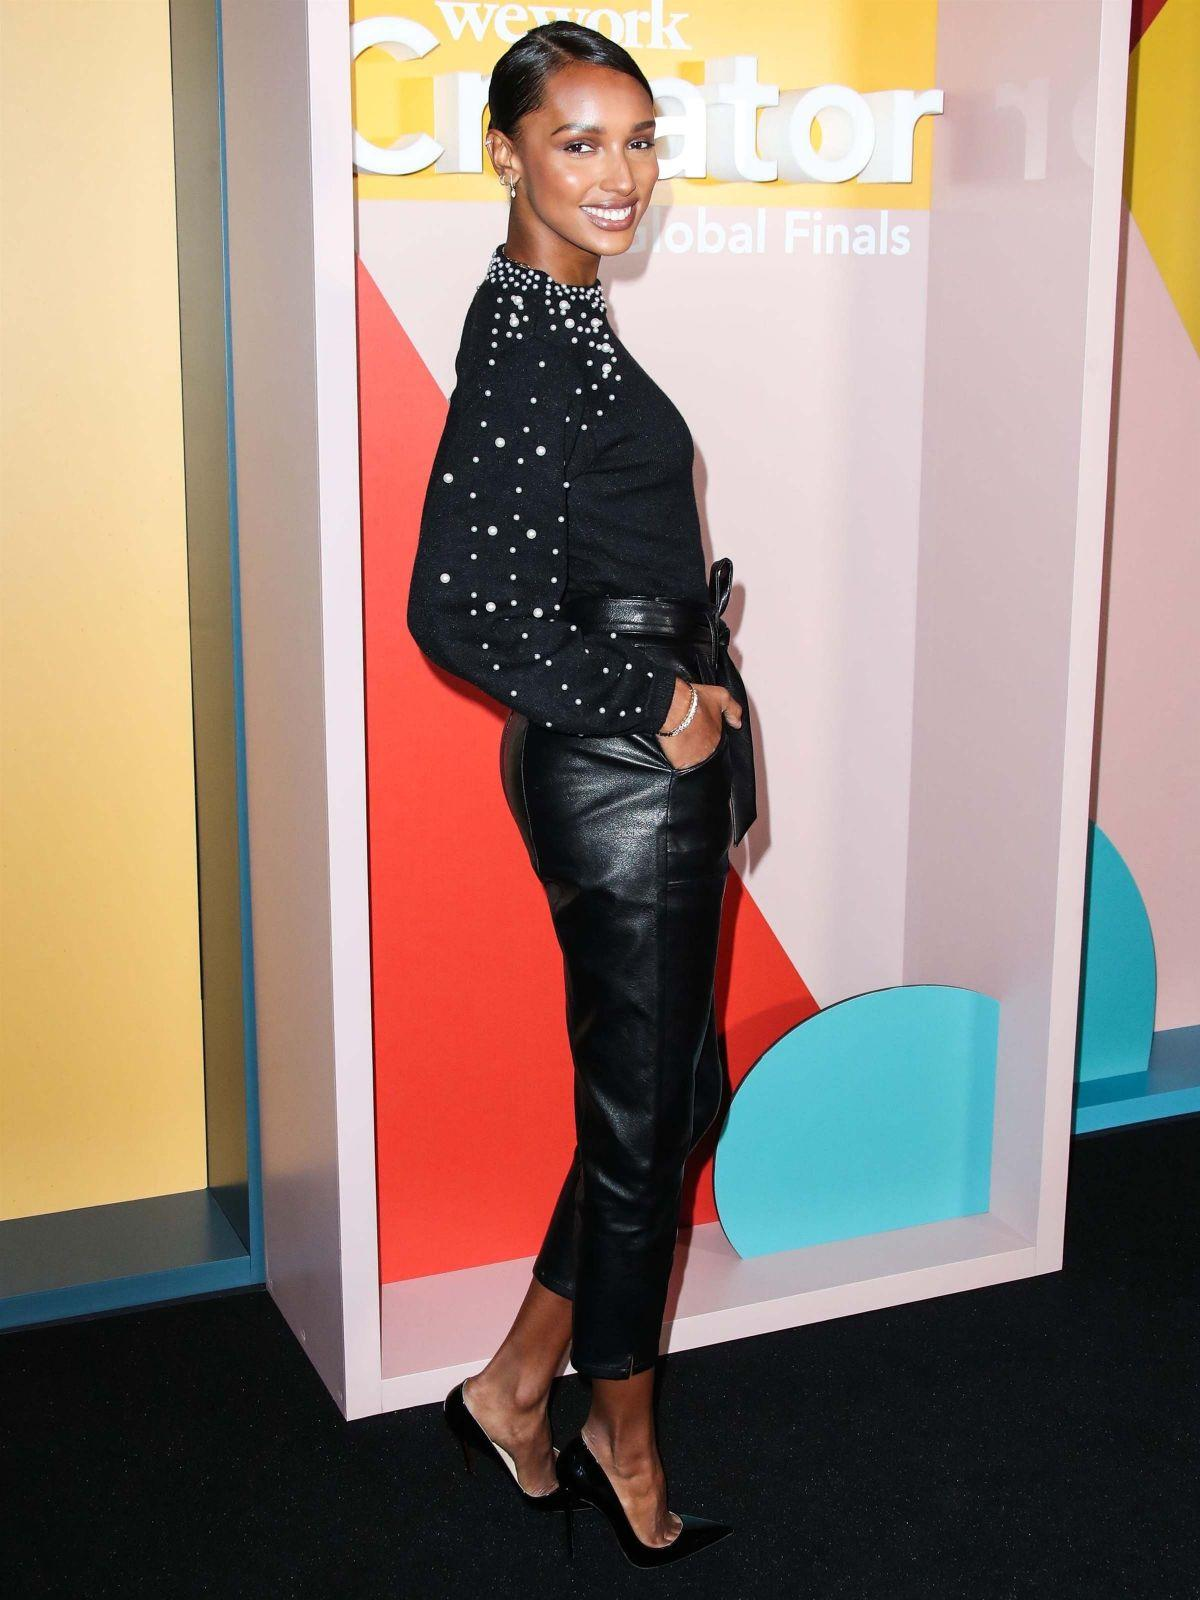 Jasmine Tookes At We Work Creator Awards Global Finals At Microsoft